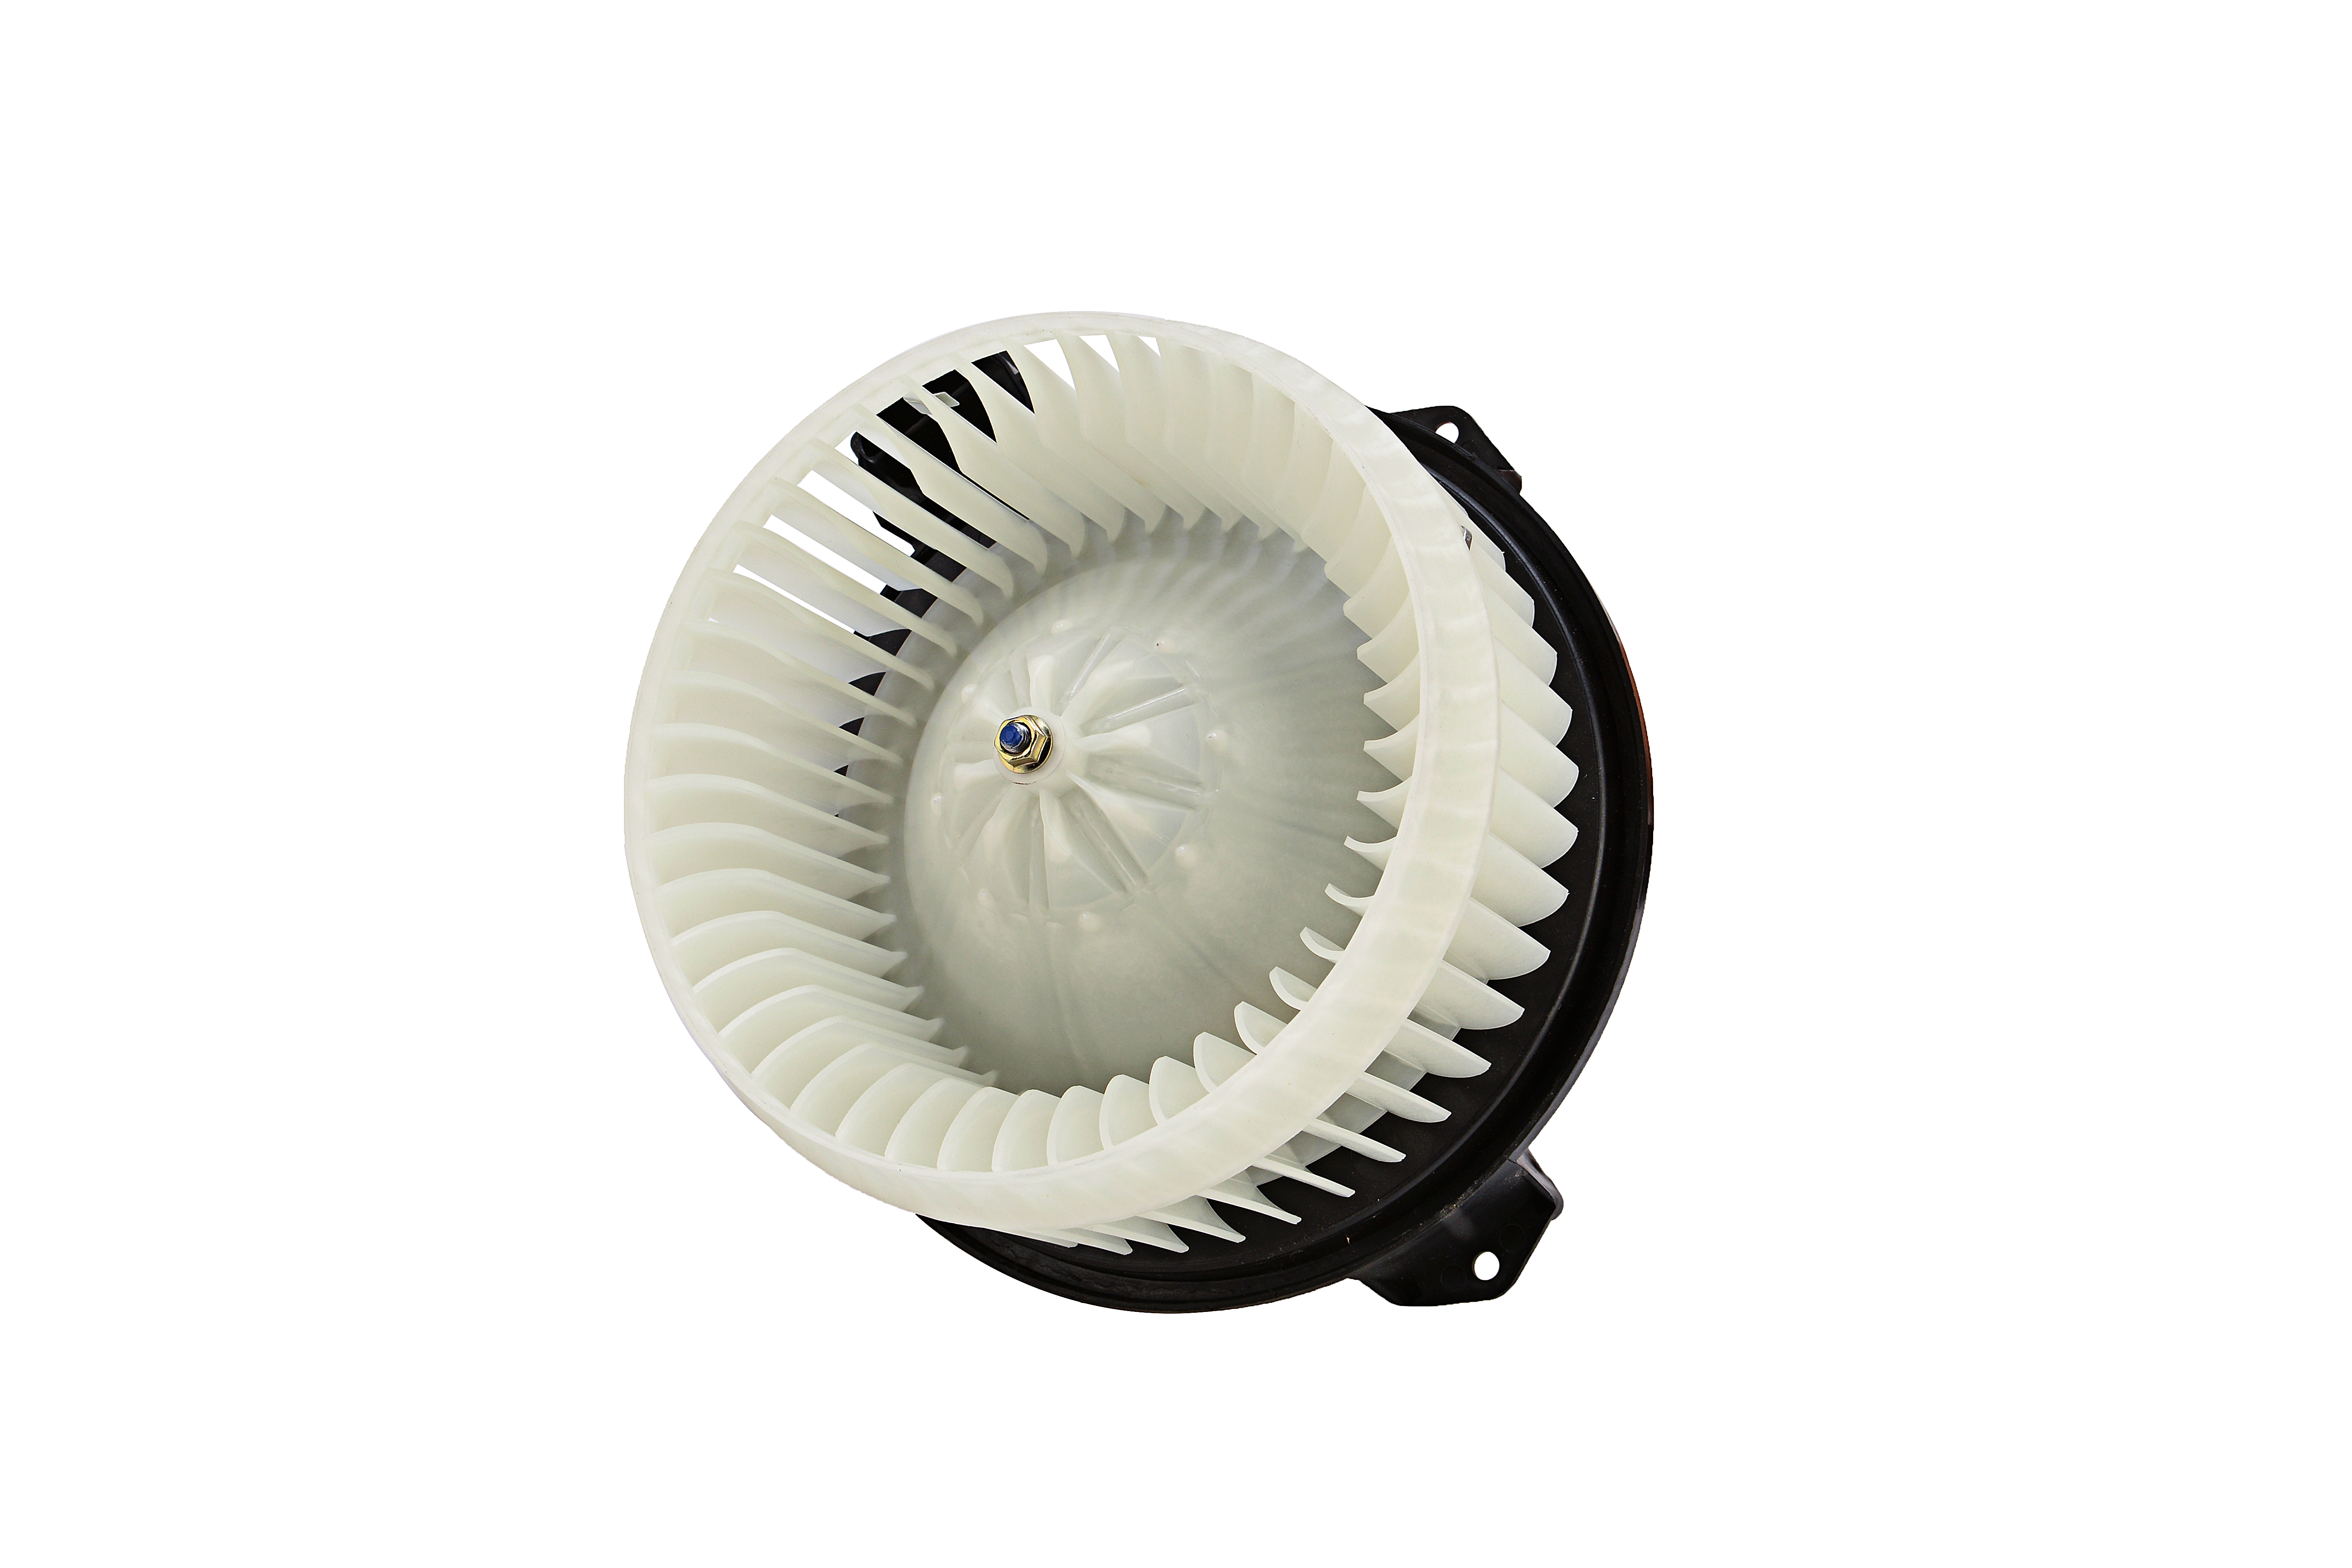 Blower Motor - Replaces 15-80644 - Fits Acura TL, Chrysler 200, Sebring, Ram, Pilot & More Image